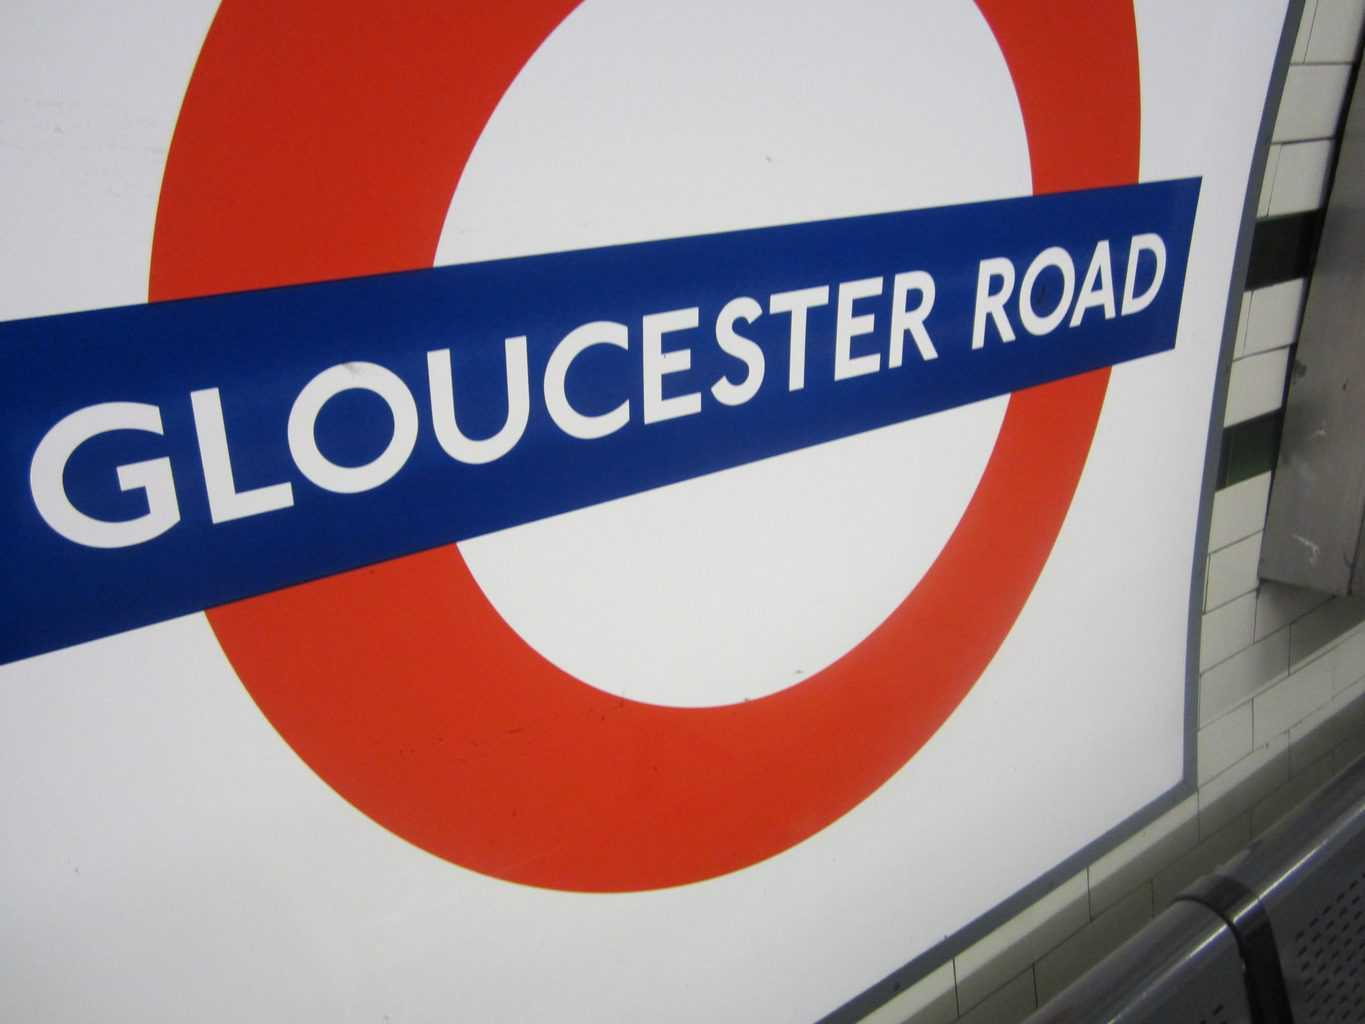 Gloucester Road tube station sign